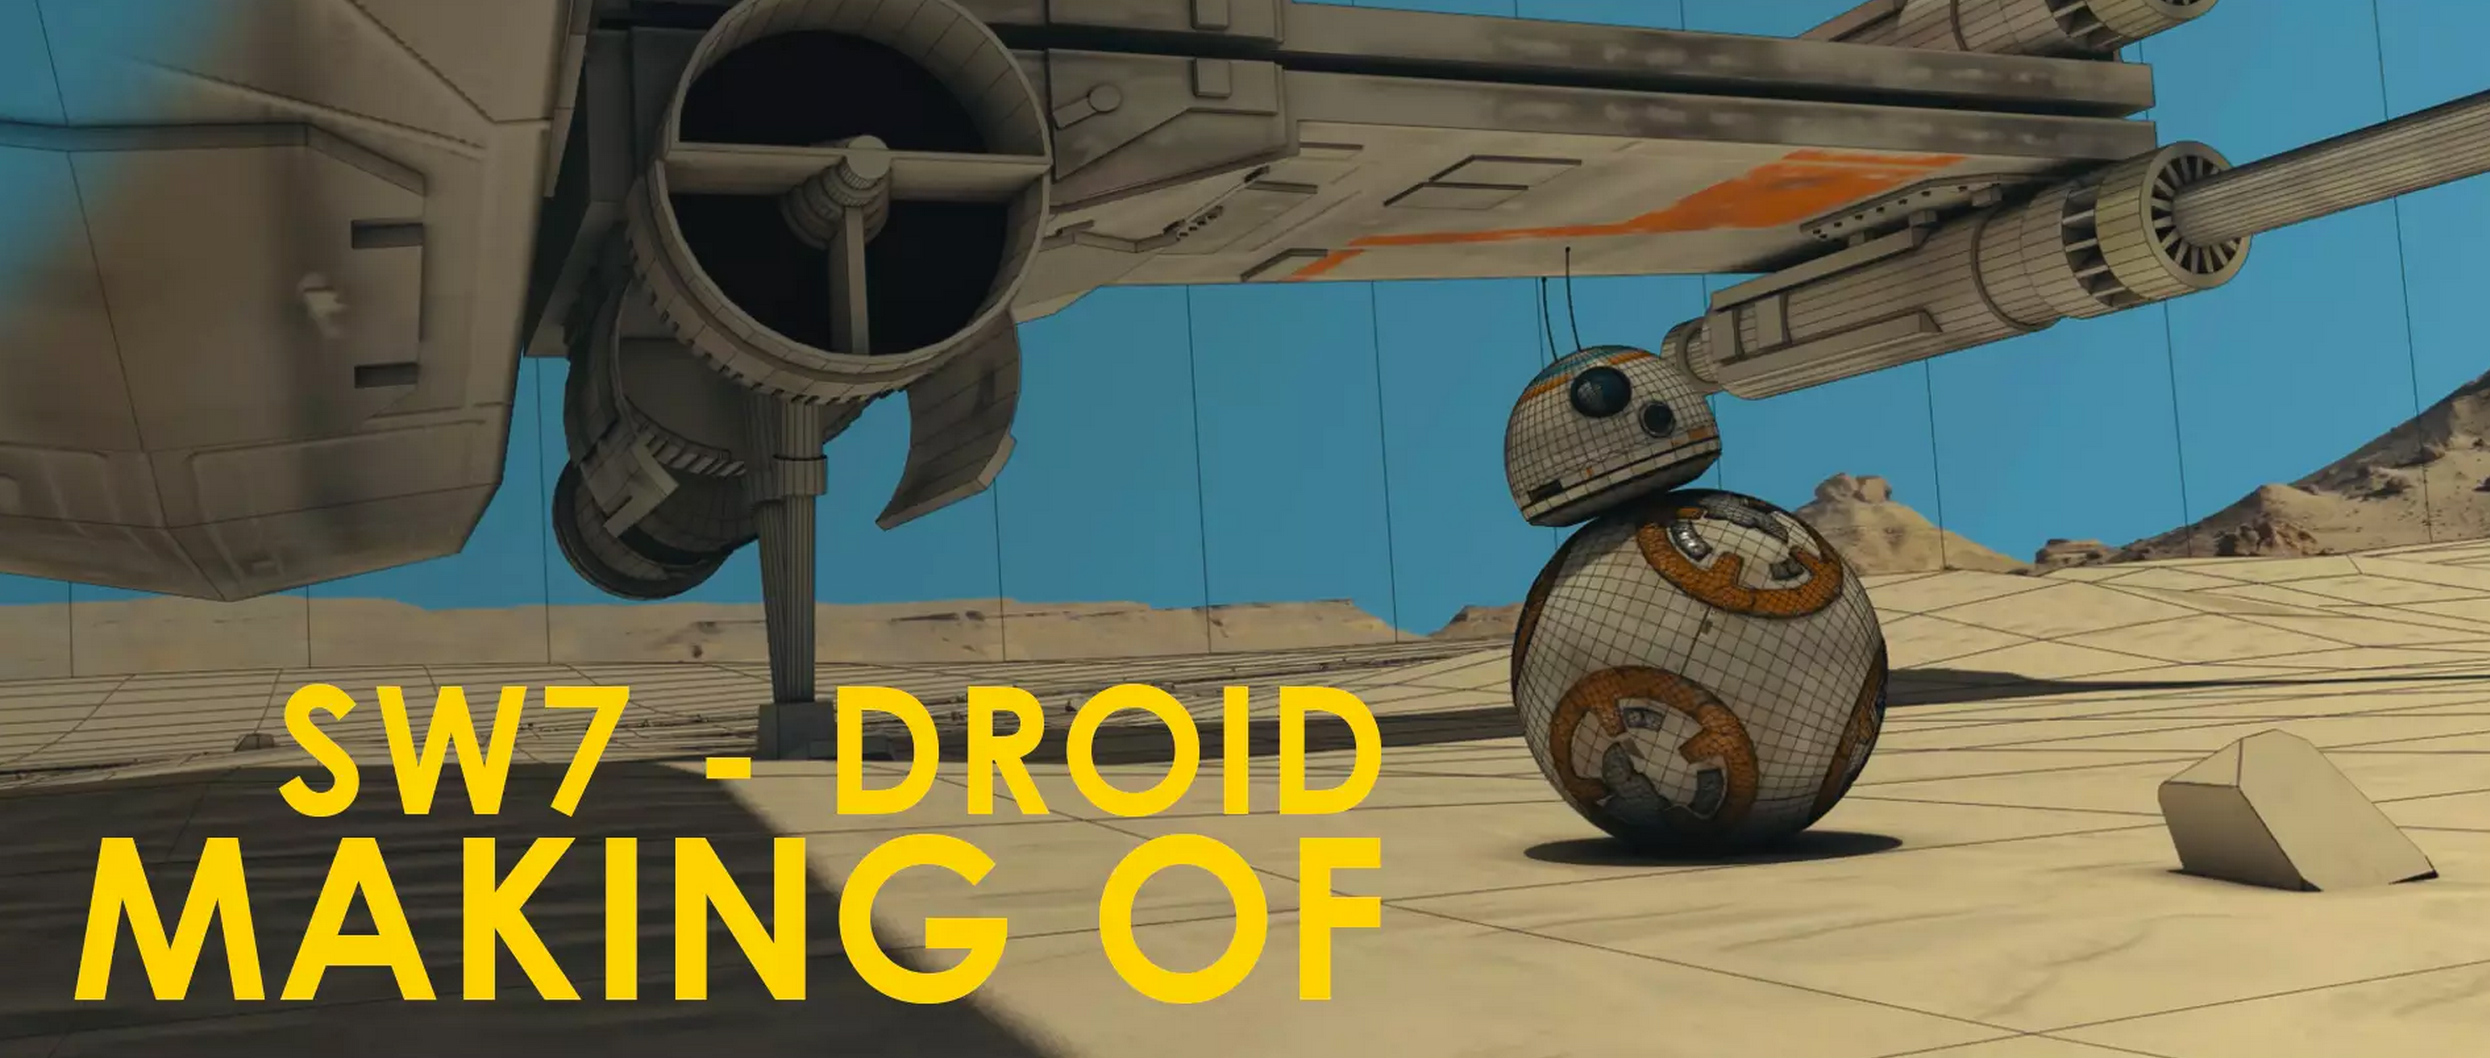 Star-Wars-7---Droid---Making-of